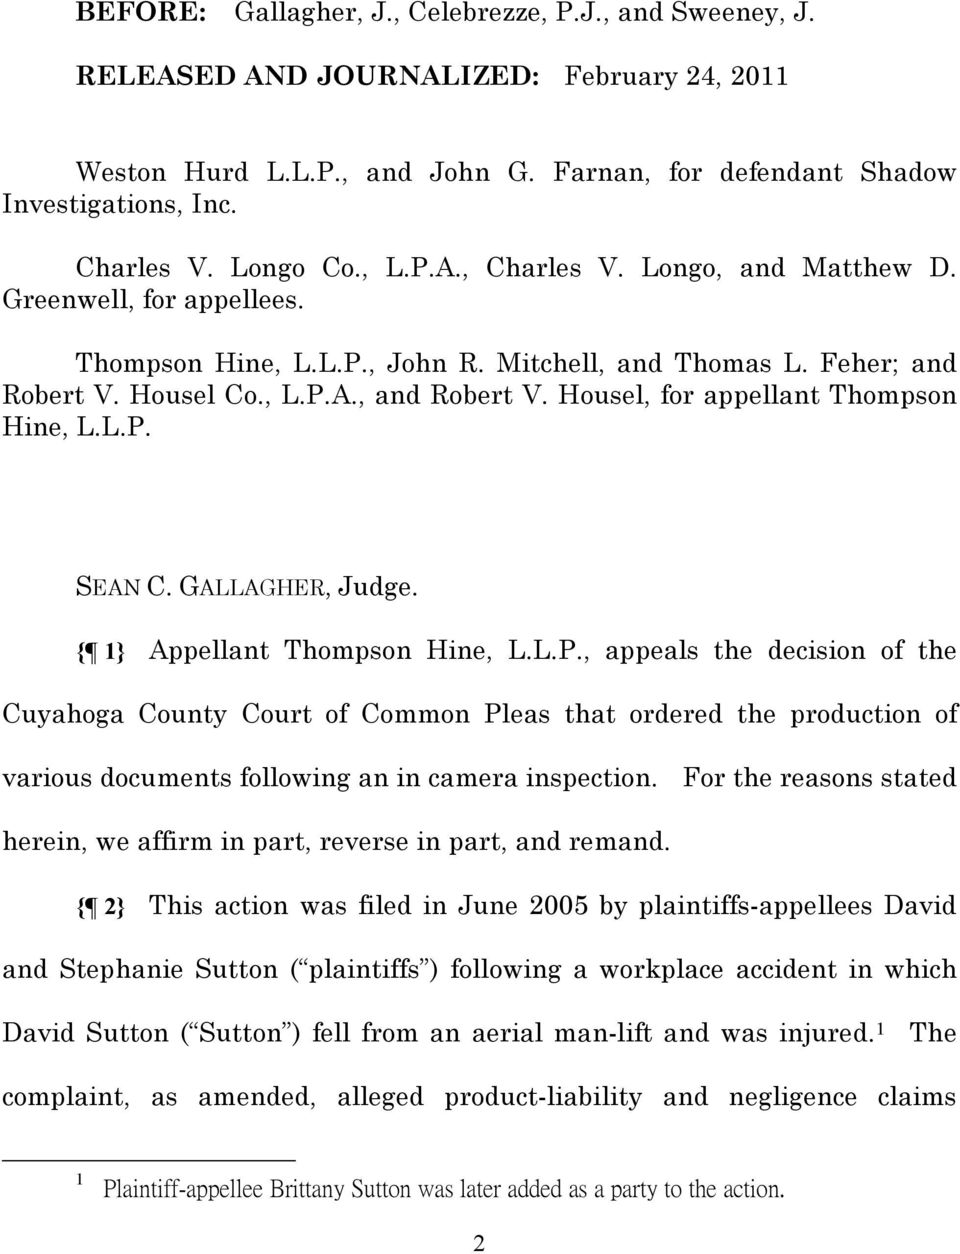 Housel, for appellant Thompson Hine, L.L.P. SEAN C. GALLAGHER, Judge. { 1} Appellant Thompson Hine, L.L.P., appeals the decision of the Cuyahoga County Court of Common Pleas that ordered the production of various documents following an in camera inspection.